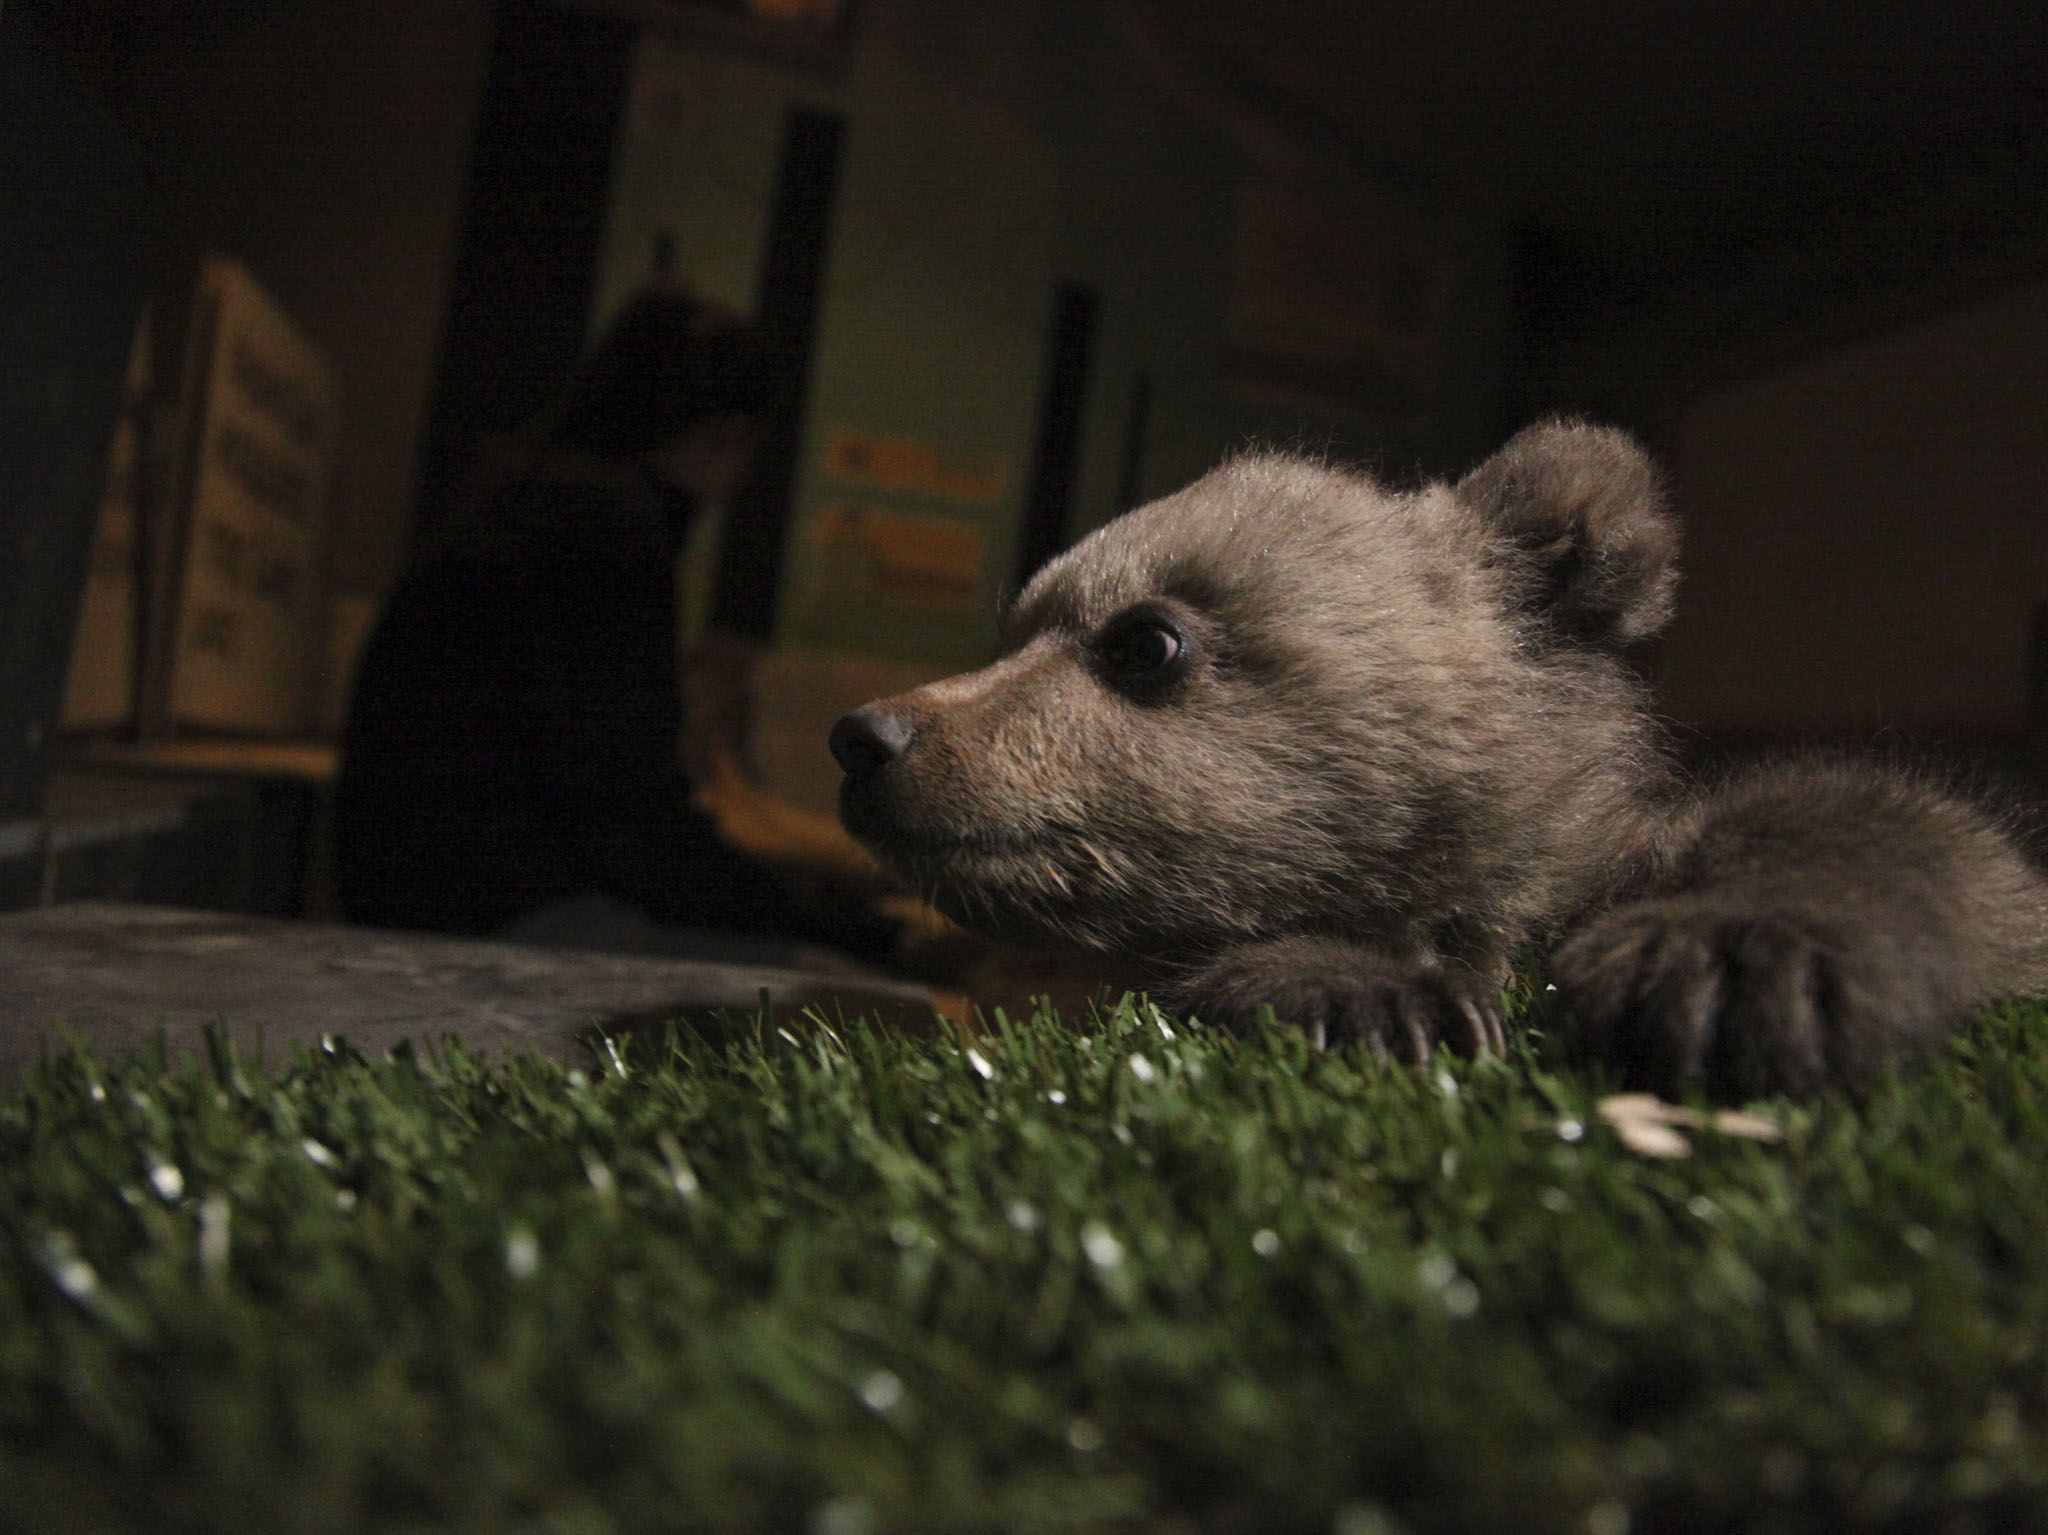 Bear cub in dark indoor enclosure. This image is from Europe's New Wild. [Photo of the day - September 2020]